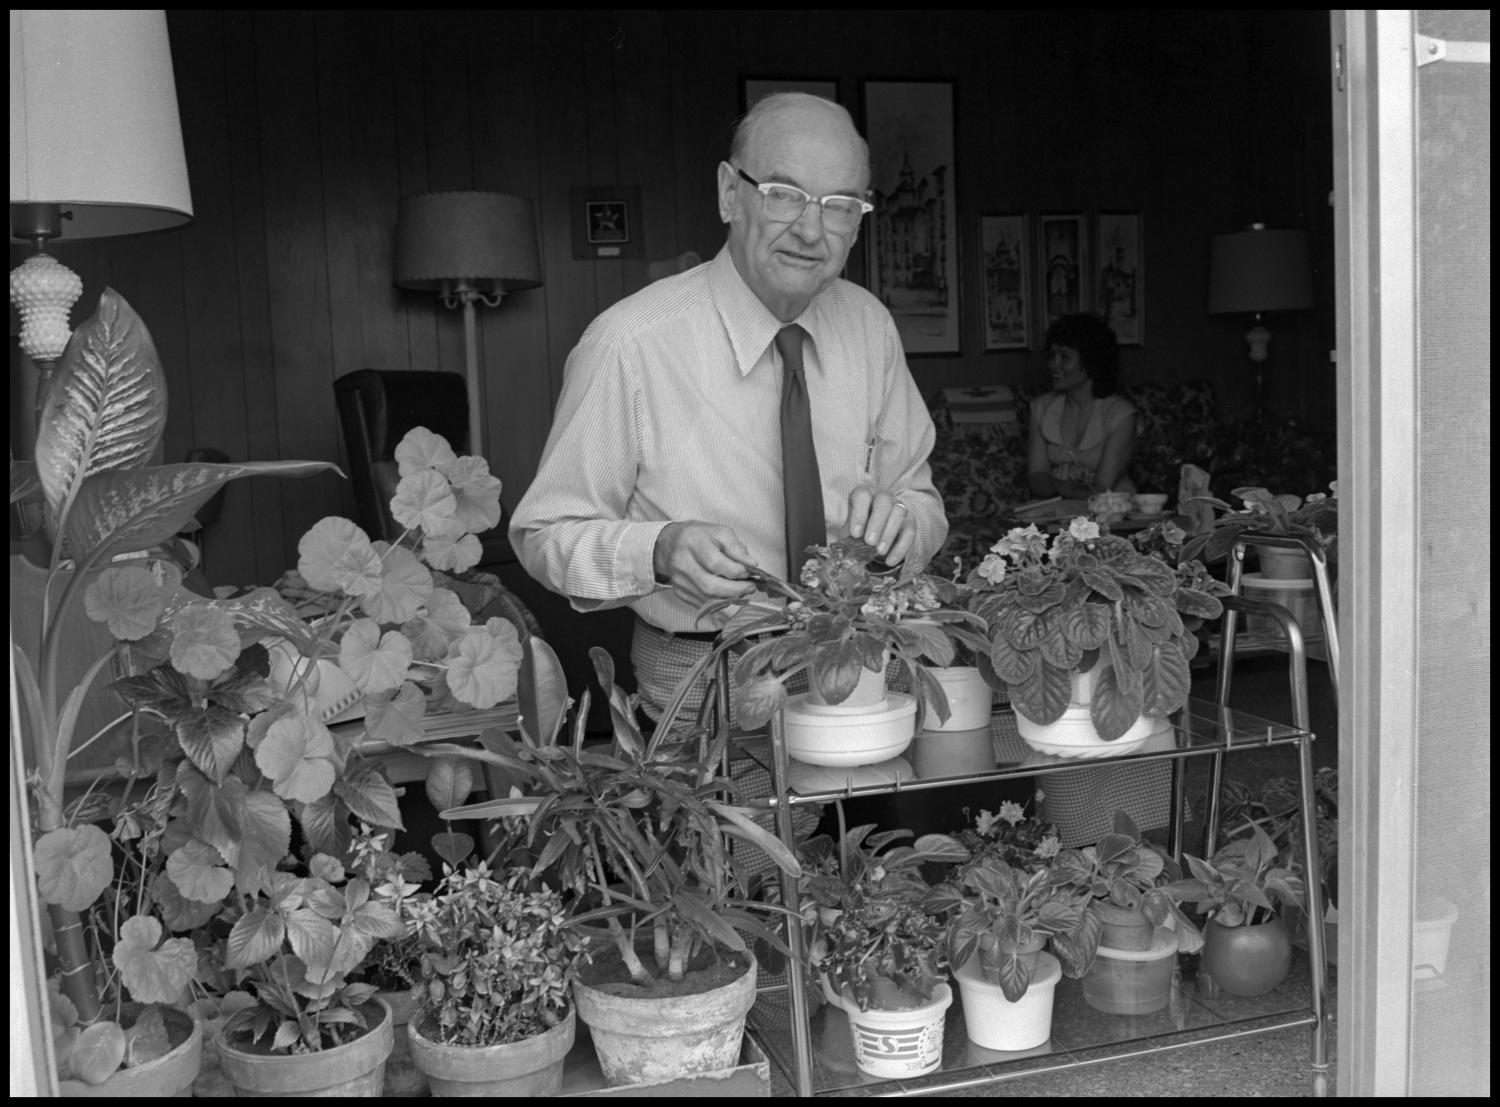 [Garland Brookshear adjusting plants], Photograph of Garland Brookshear, a member of the Management faculty at NTSU, adjusting the leaves on one of his potted plants. There are several close to the window. Behind him a woman is visible sitting on the couch. Brookshear is being photographed for his retirement.,